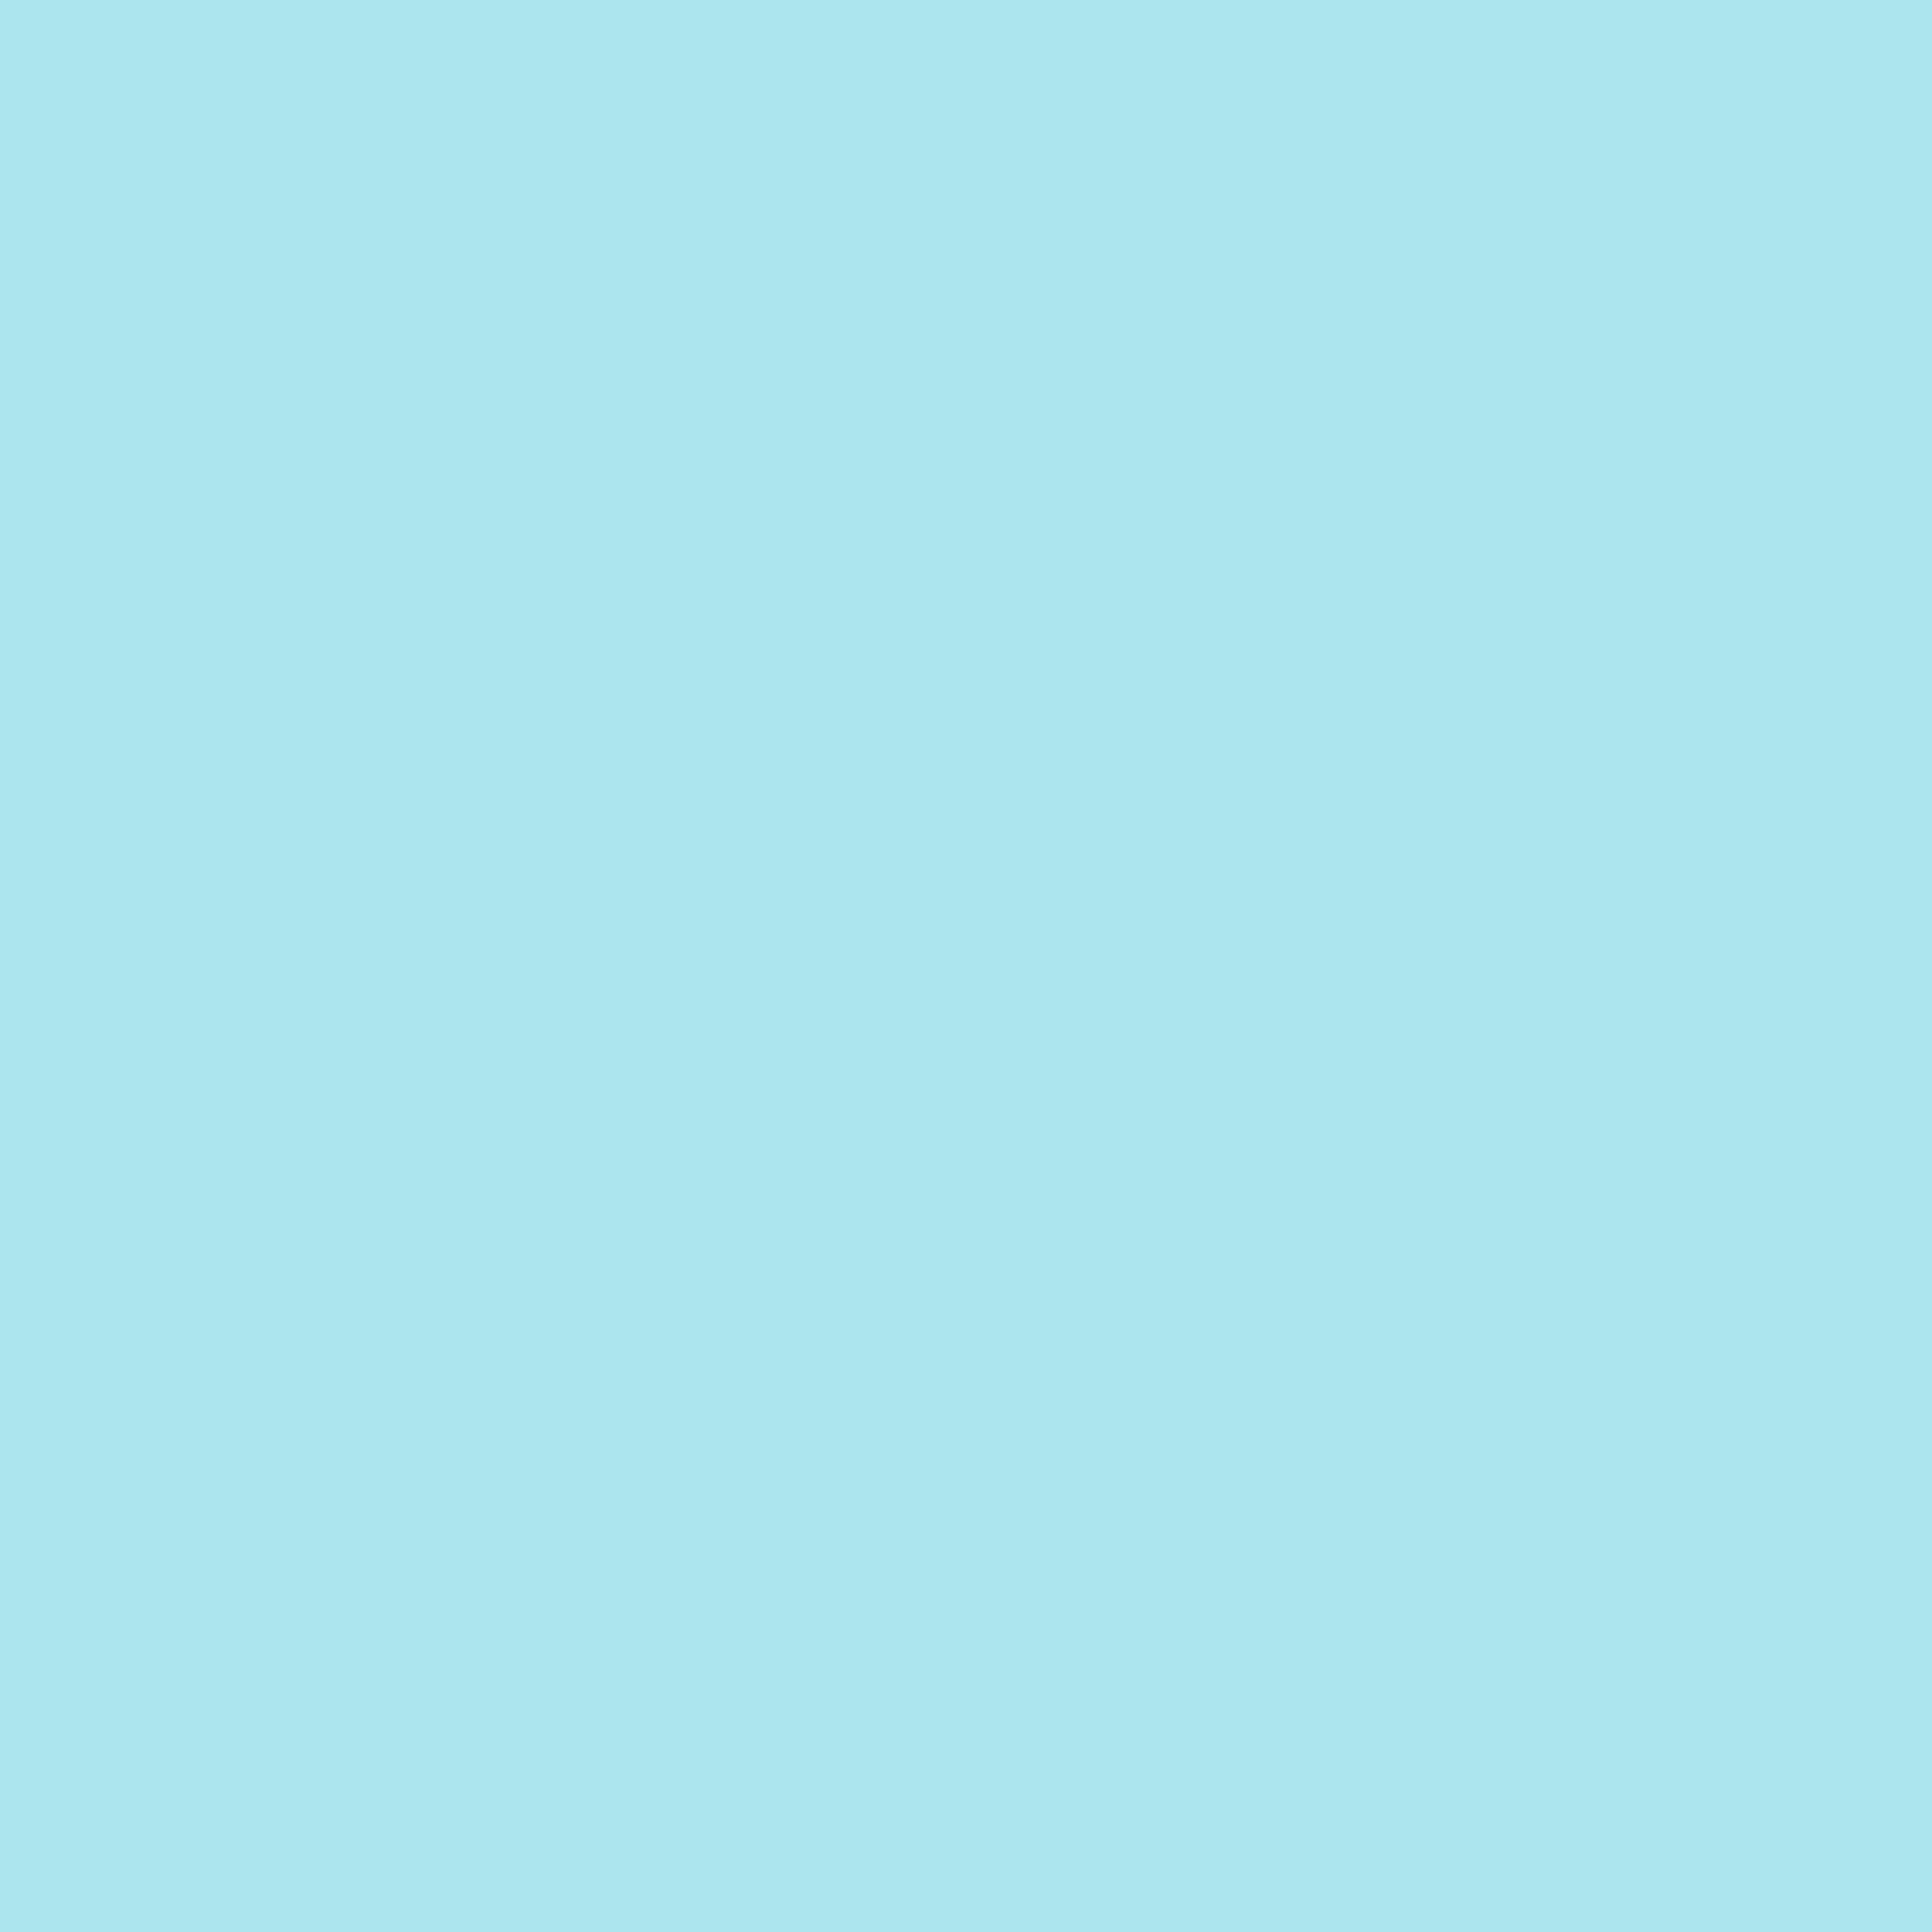 3600x3600 Blizzard Blue Solid Color Background